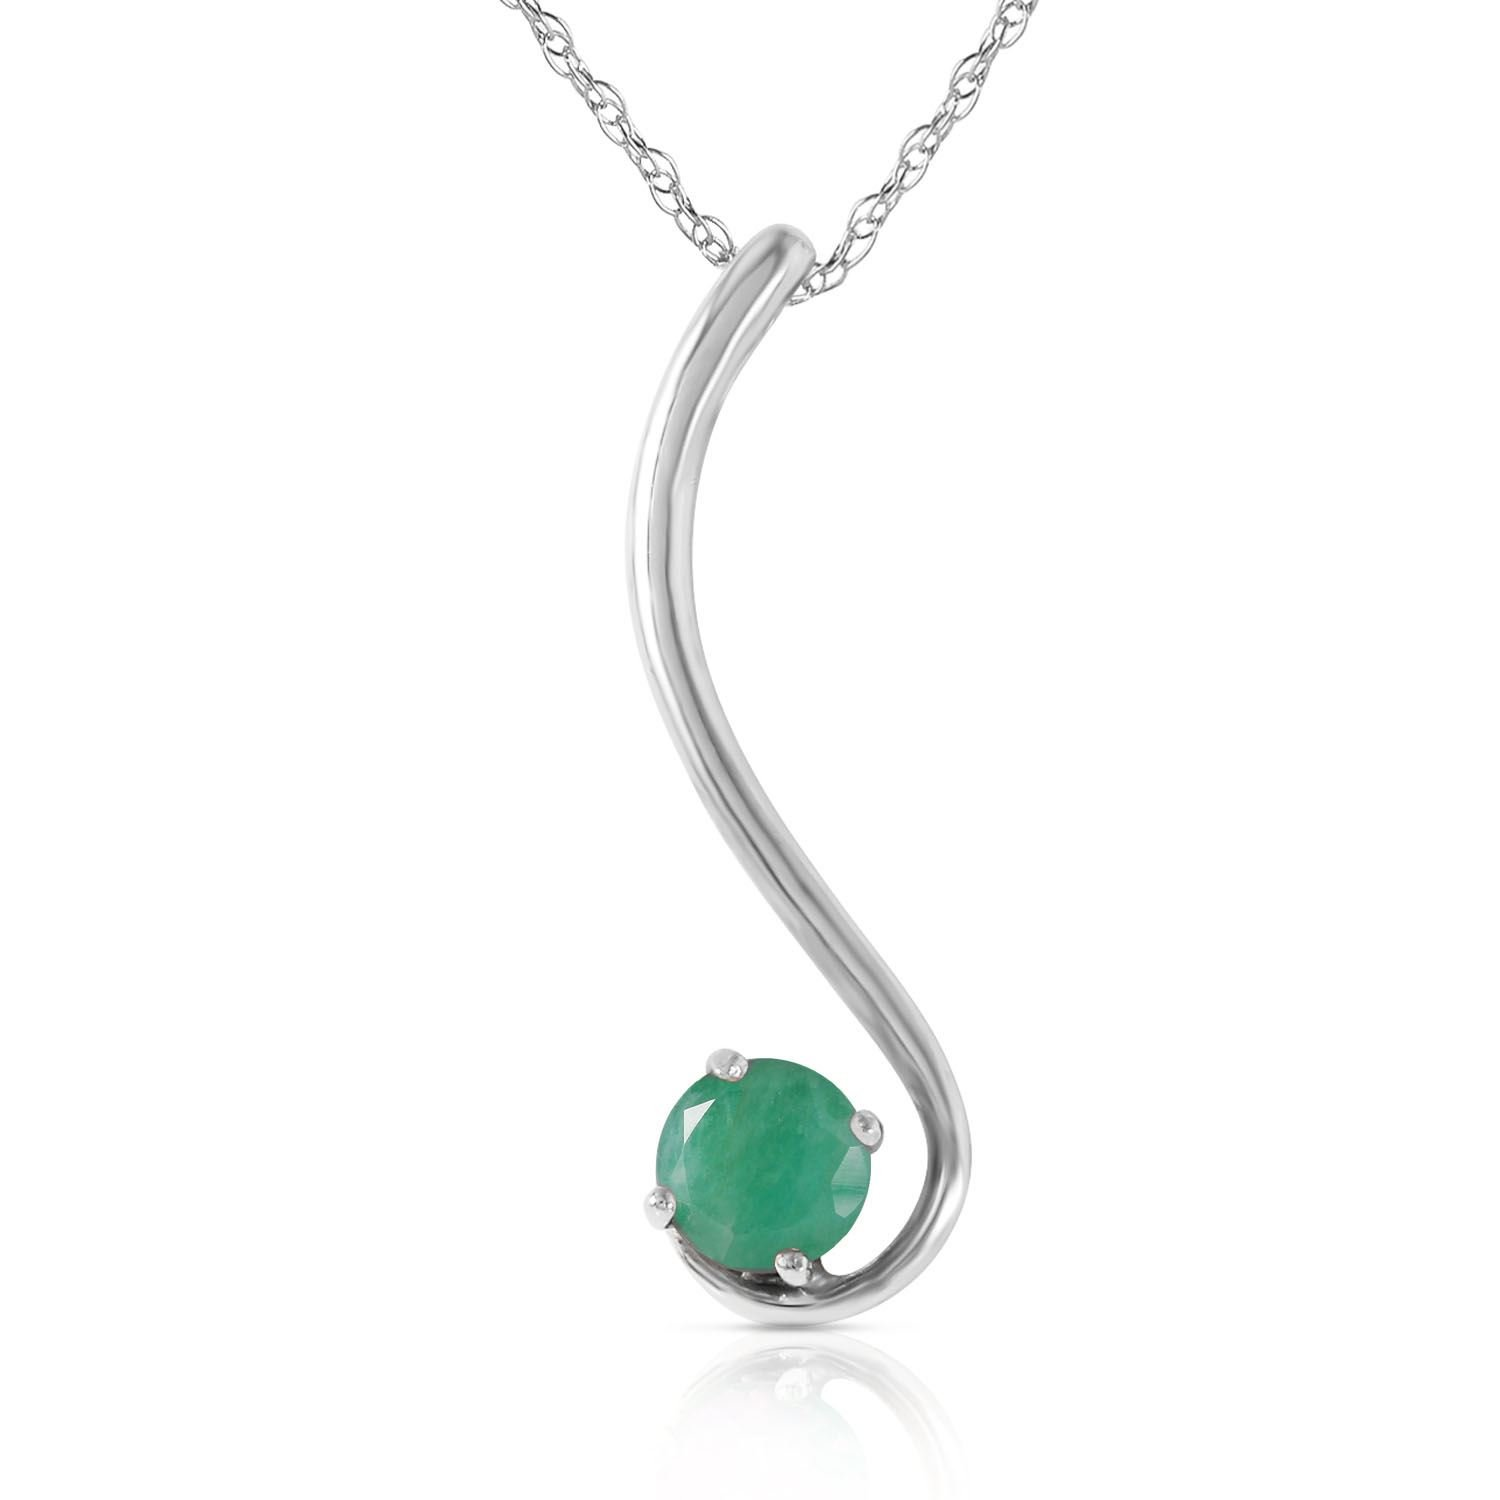 ALARRI 0.55 CTW 14K Solid White Gold Accentuate The Given Emerald Necklace with 24 Inch Chain Length